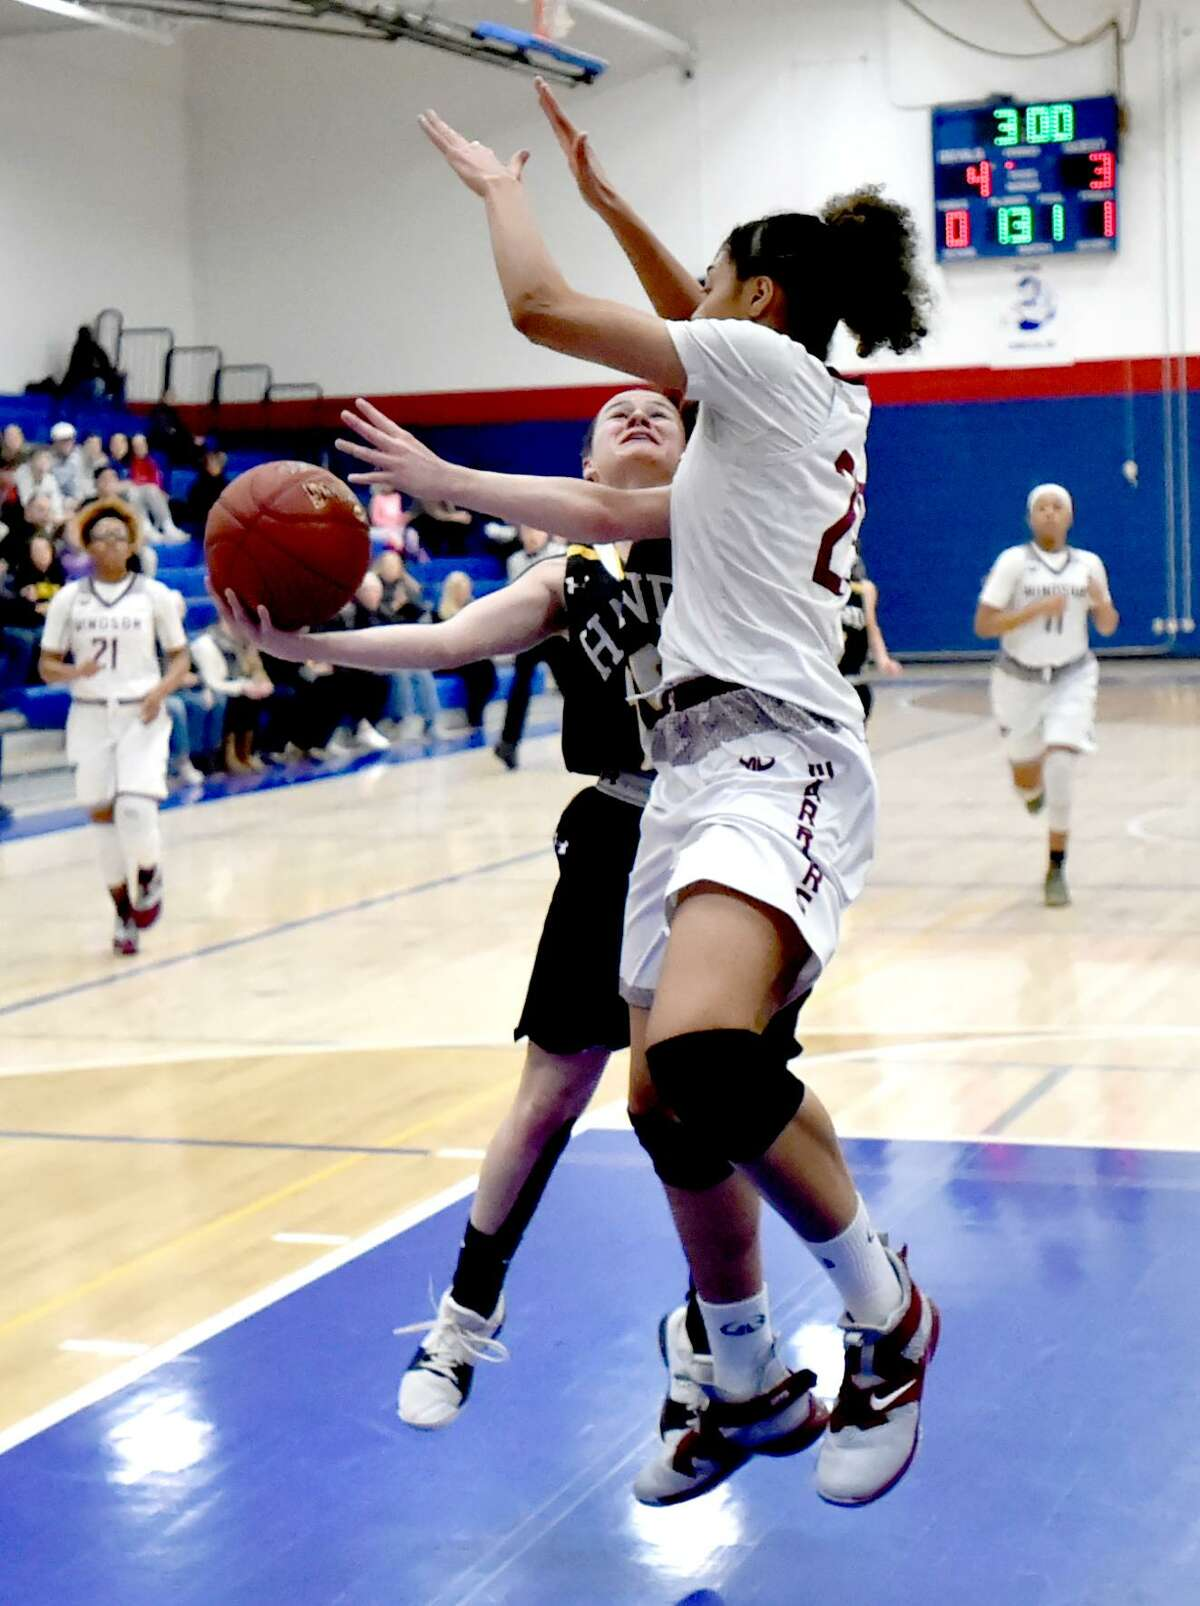 Plainville, Connecticut - Friday, March 58 2019: Windsor H.S. vs. Daniel Hand H.S. girls basketball during the semi-finals of the CIAC 2019 State Girls Basketball Tournament Friday evening at Plainville High School.